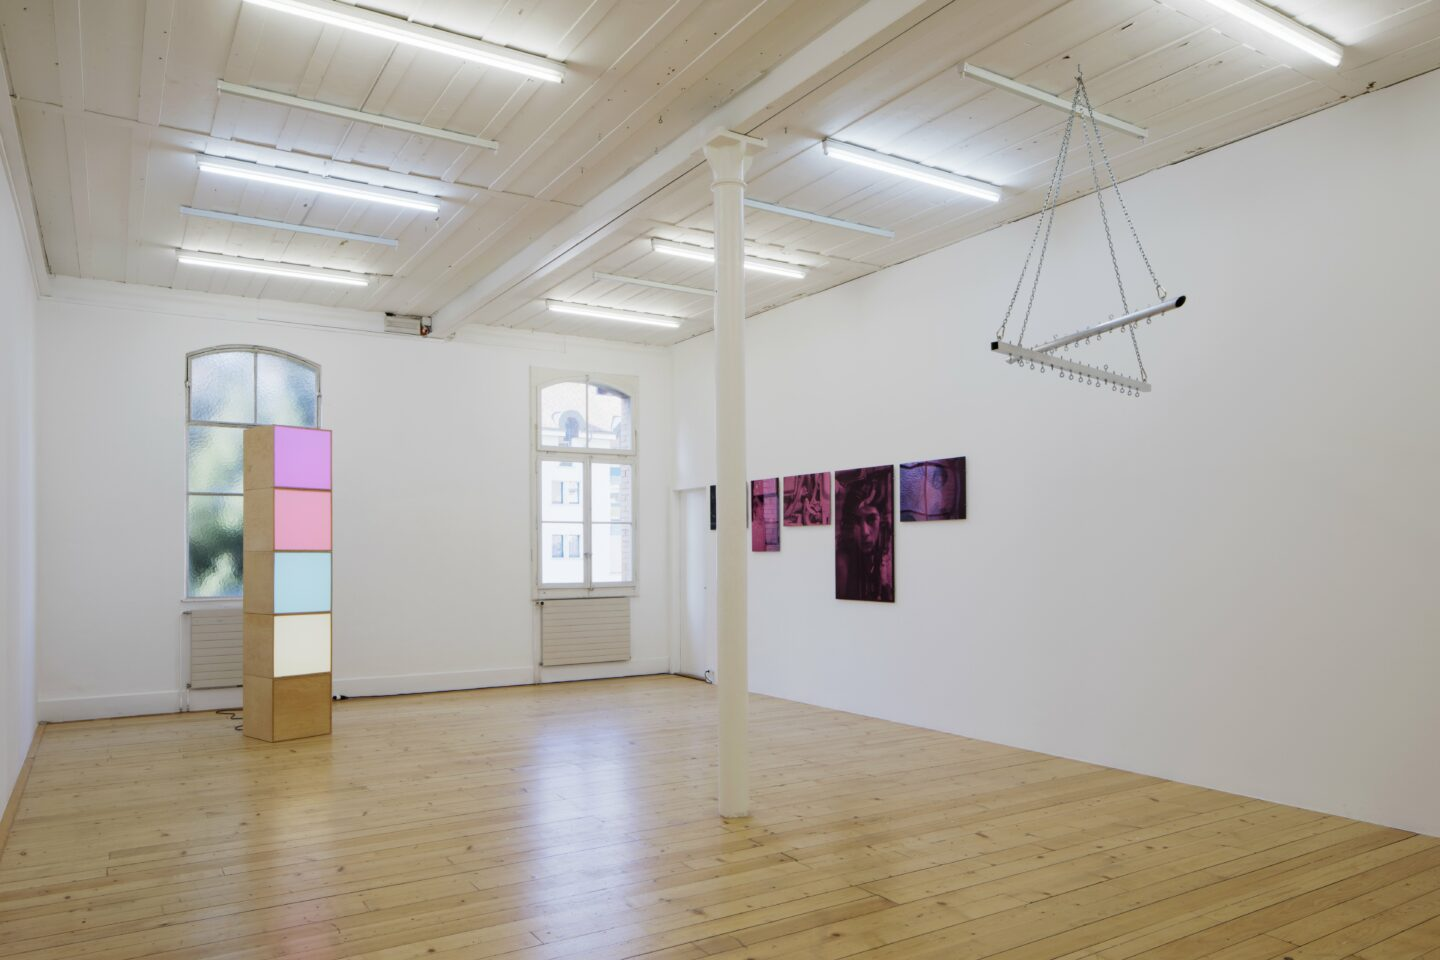 Exhibition View «Discoteca Analitica» at Fri Art Kunsthalle, Fribourg / Photo: Thomas Julier / © Fri Art Kunsthalle